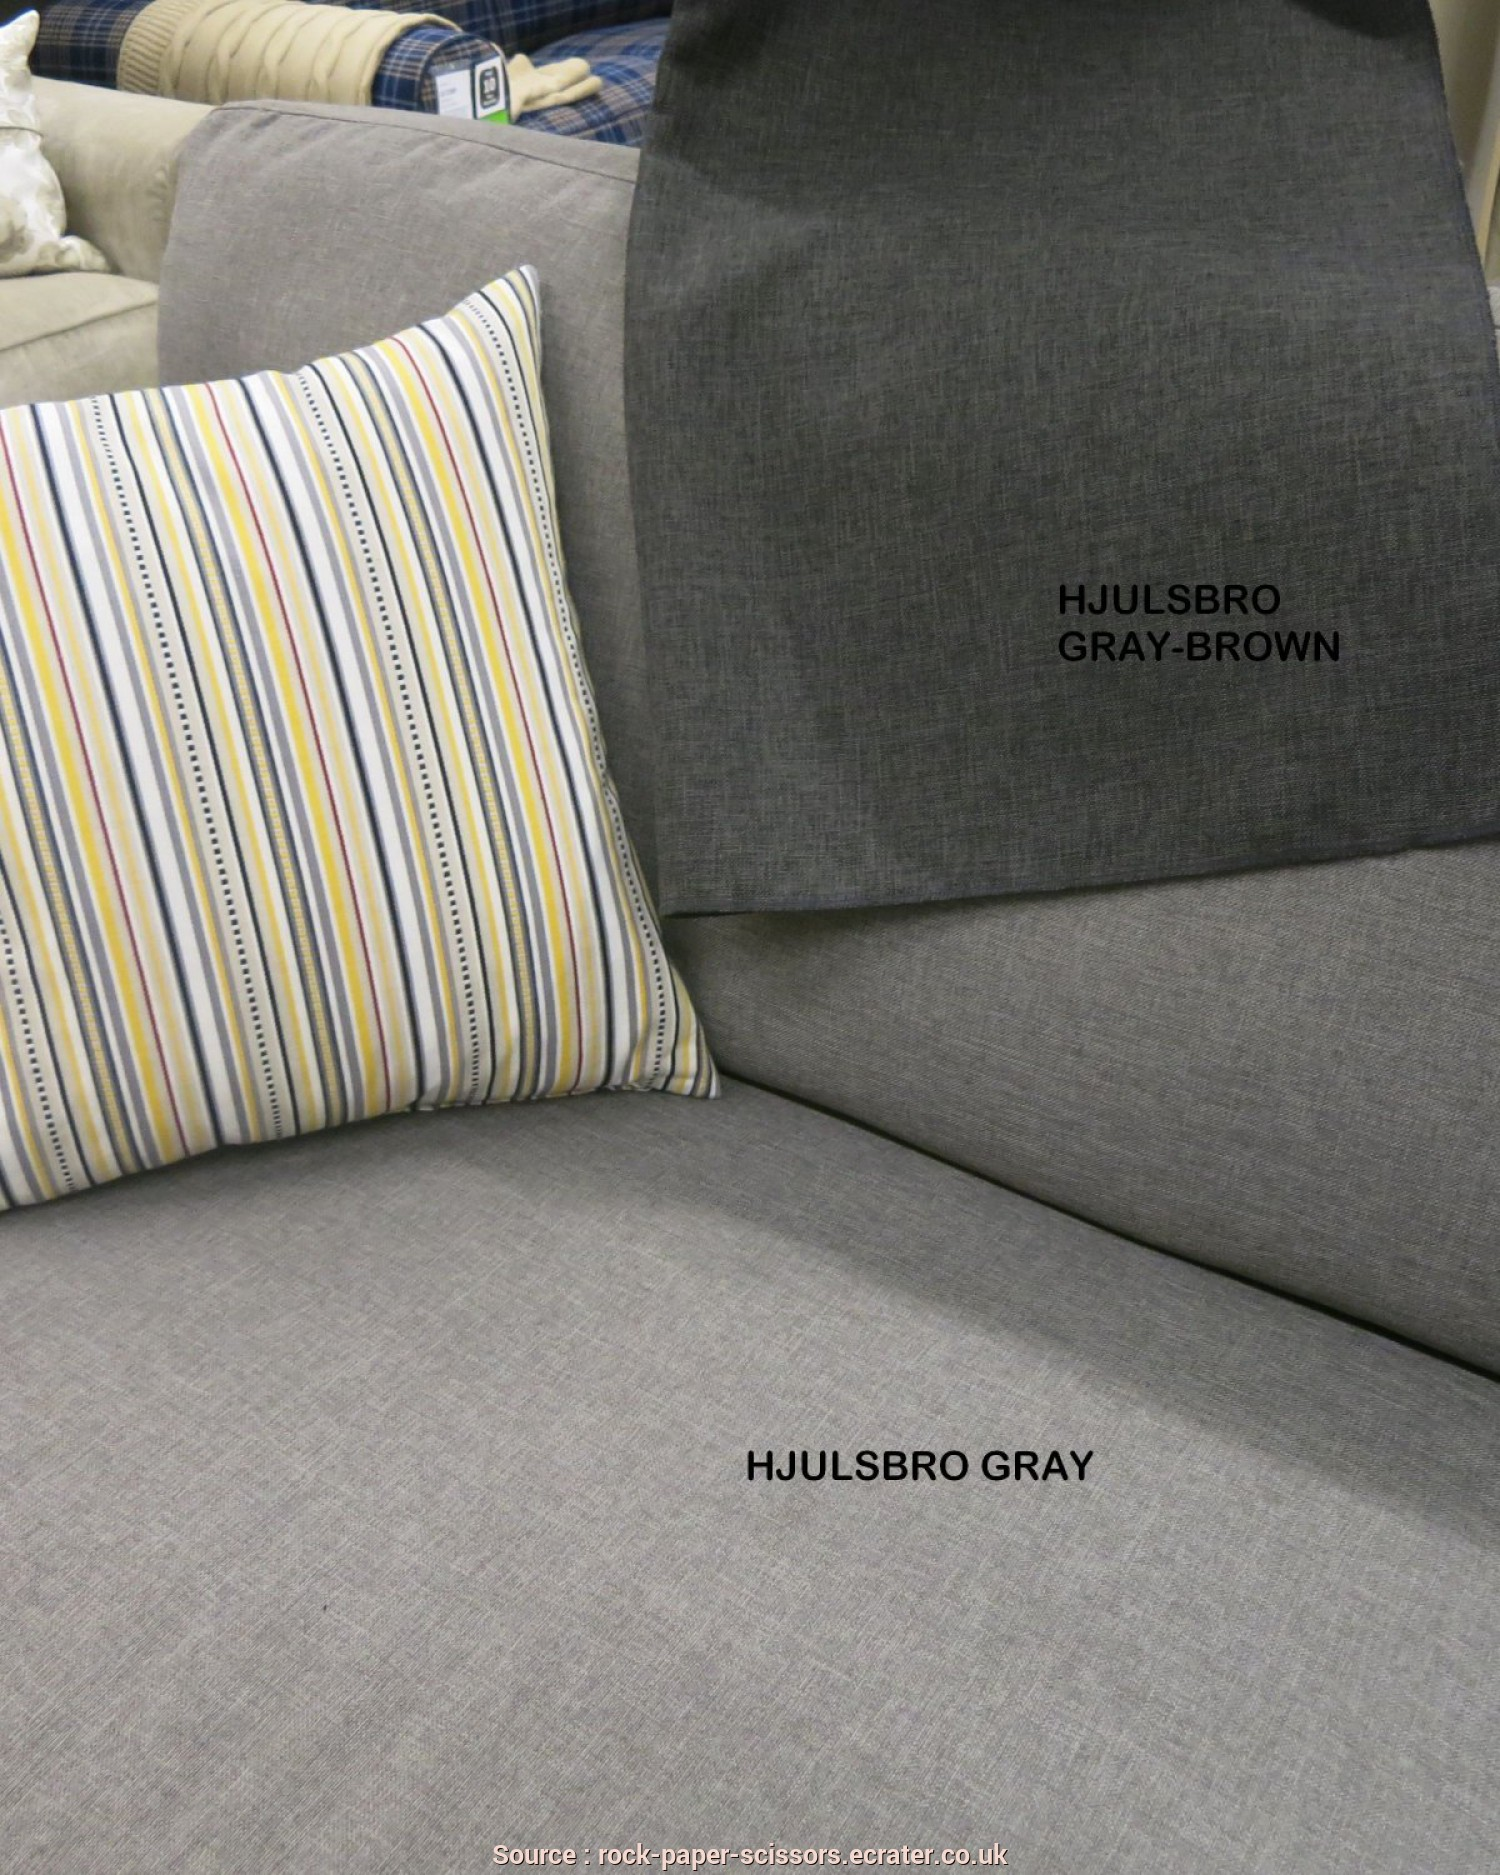 Ikea Klippan Vissle Grey, Freddo IKEA HOVÅS Hovas Sofa Armchair, Footstool SLIPCOVER Cover Combo HJULSBRO GRAY BROWN Grey, Brown